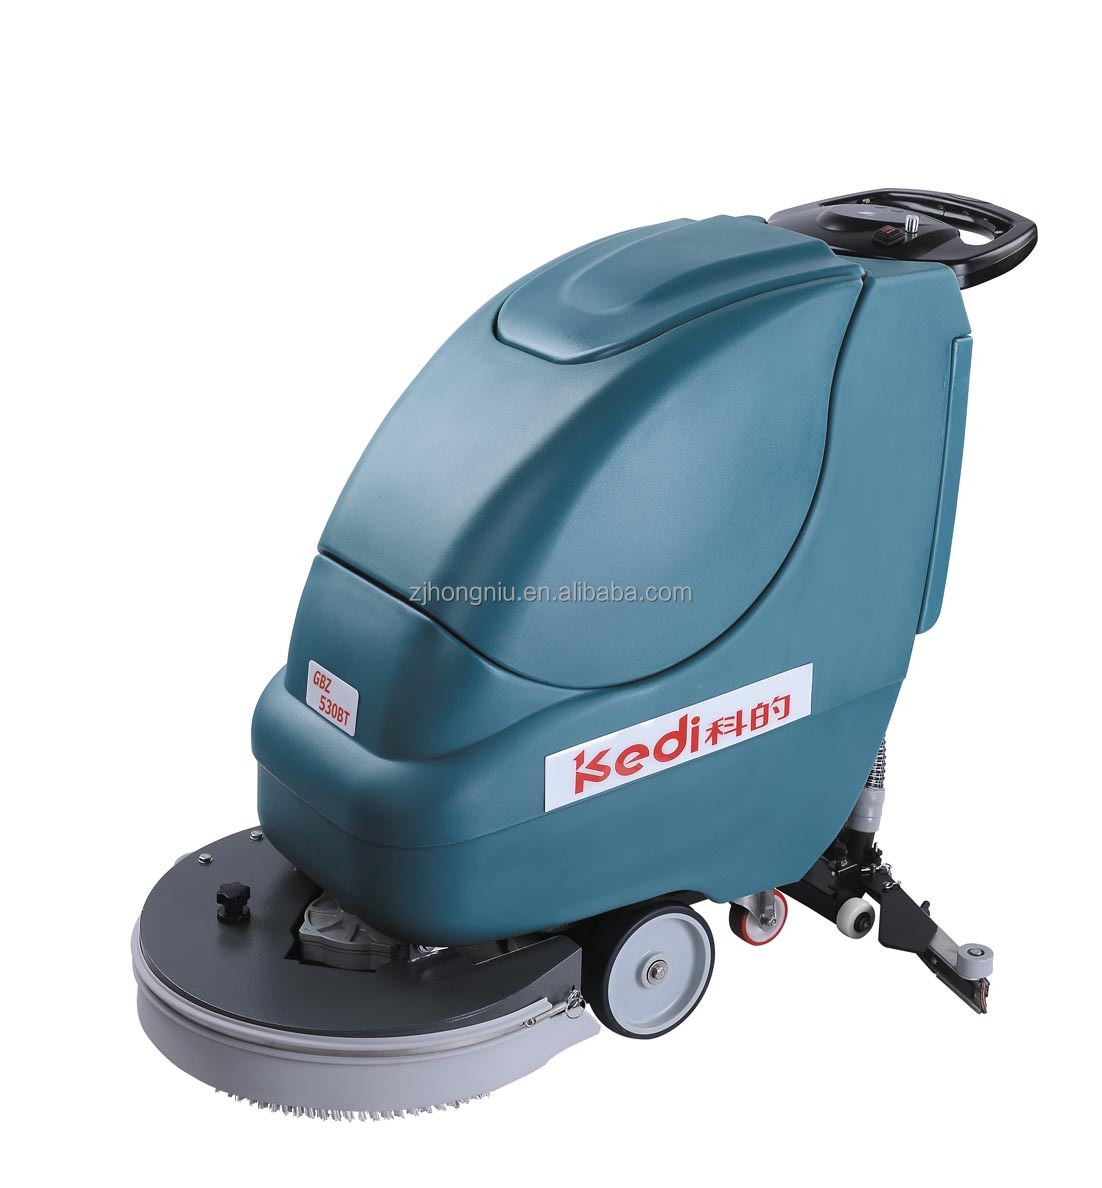 Wholesale ce dual brush cleaning waxing polishing machine for Floor cleaning machine